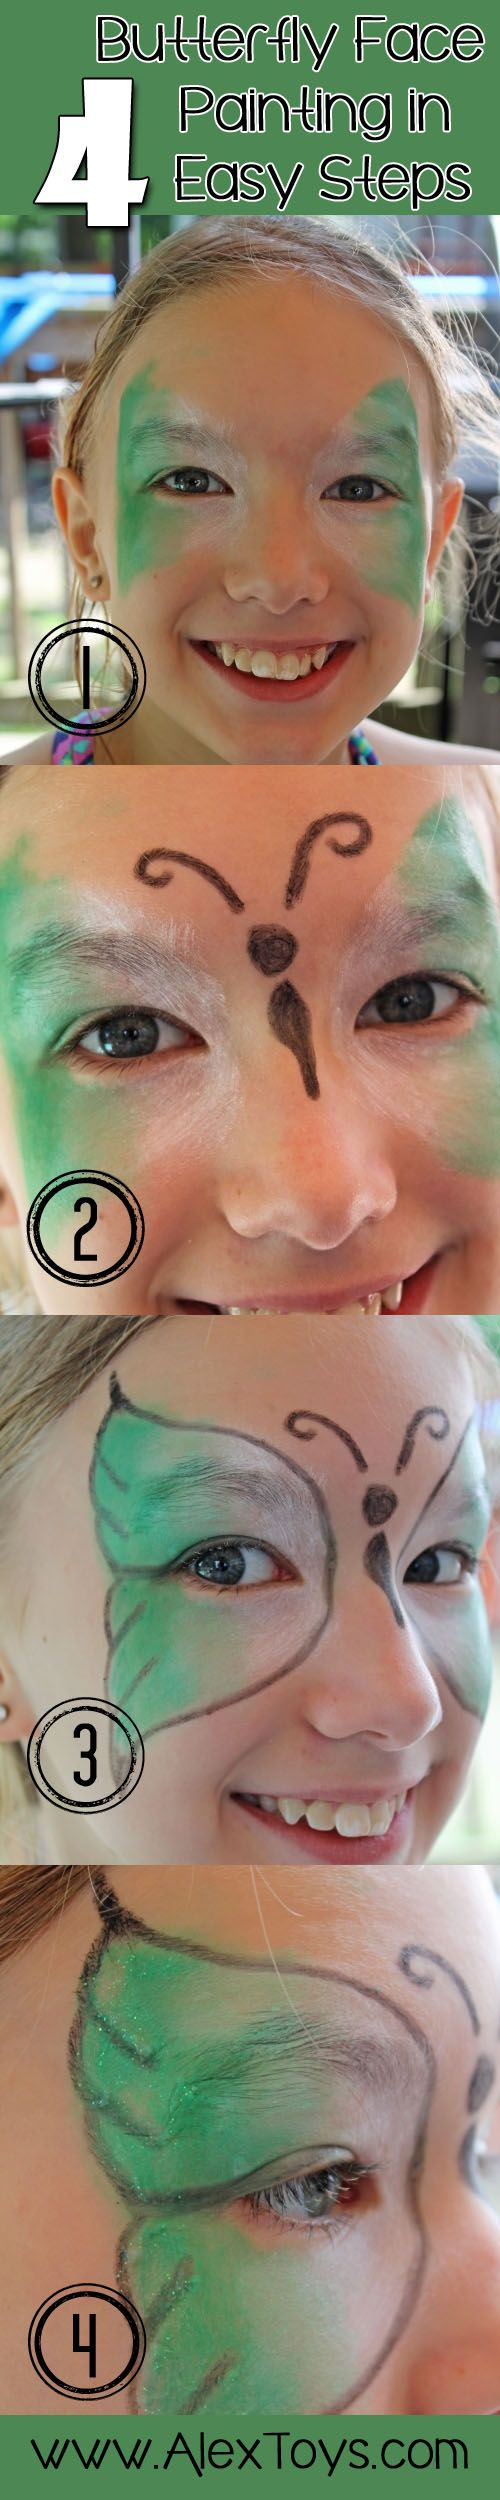 DIY butterfly #facepainting in 4 EAST steps! http://blog.alextoys.com/how-to-face-paint/ via @ALEX Toys by @Angie Knutson